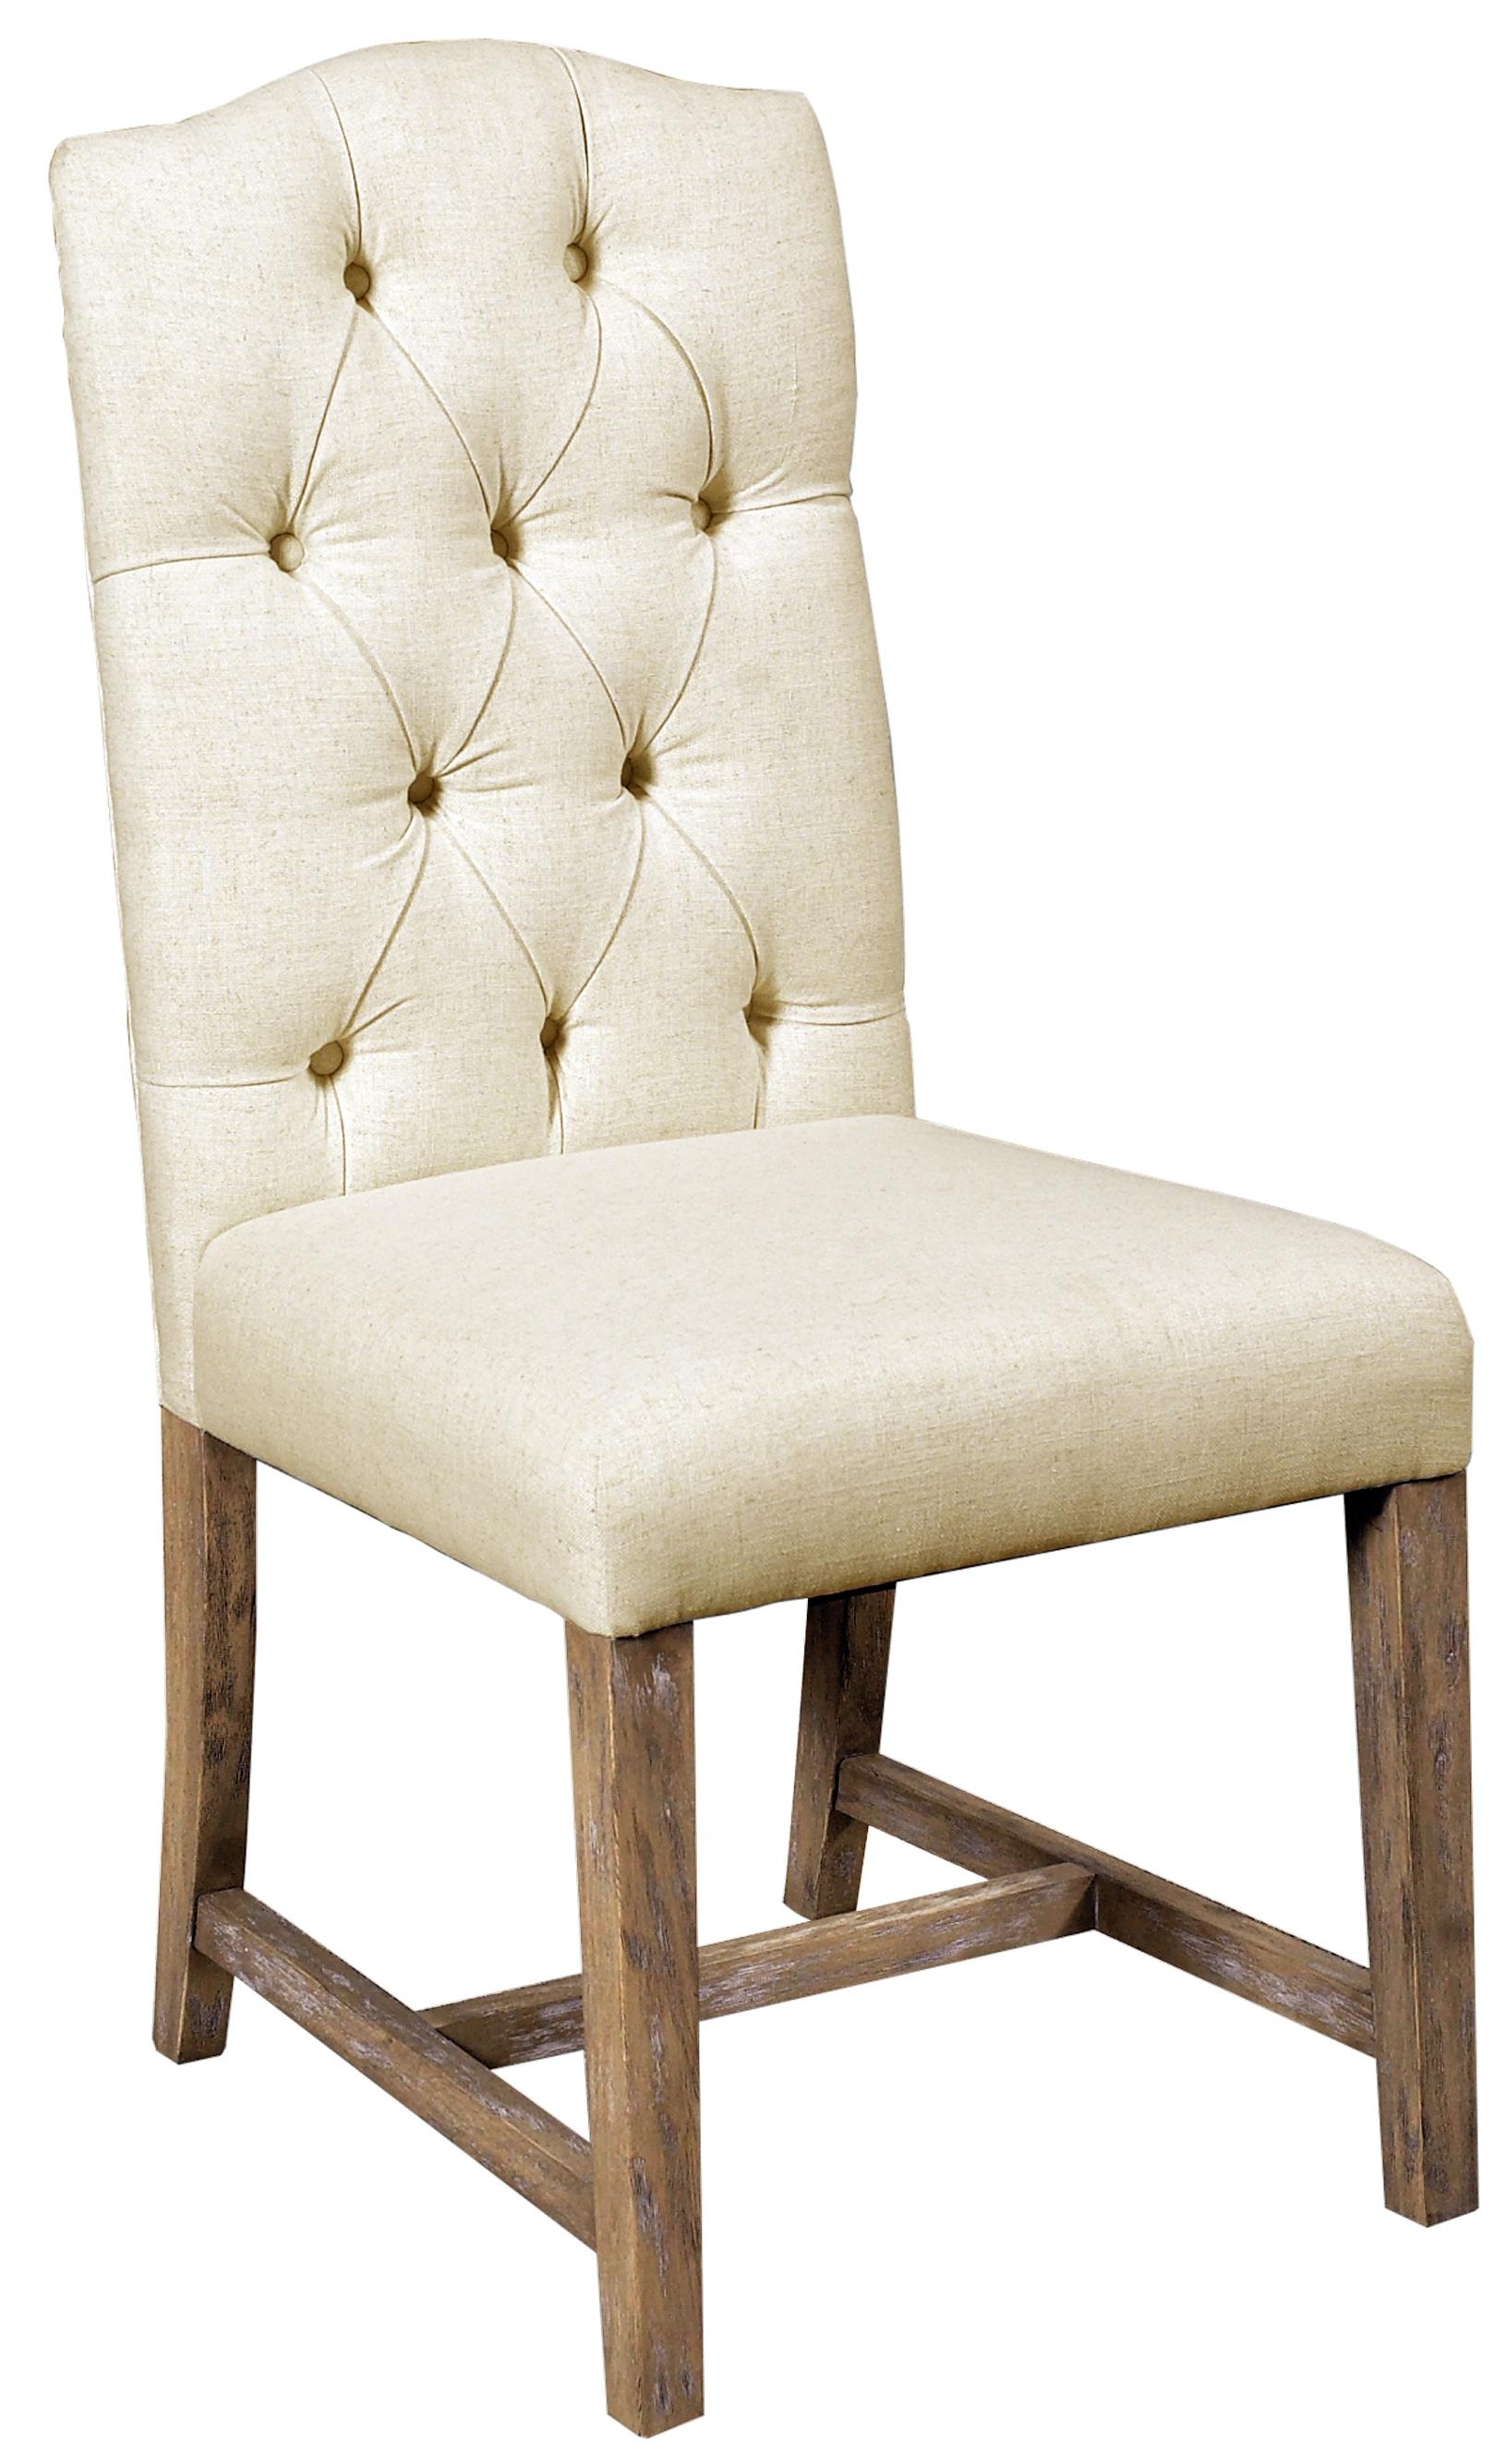 Pulaski Furniture Accentrics Home Zoie Side Chair - Item Number: 205021